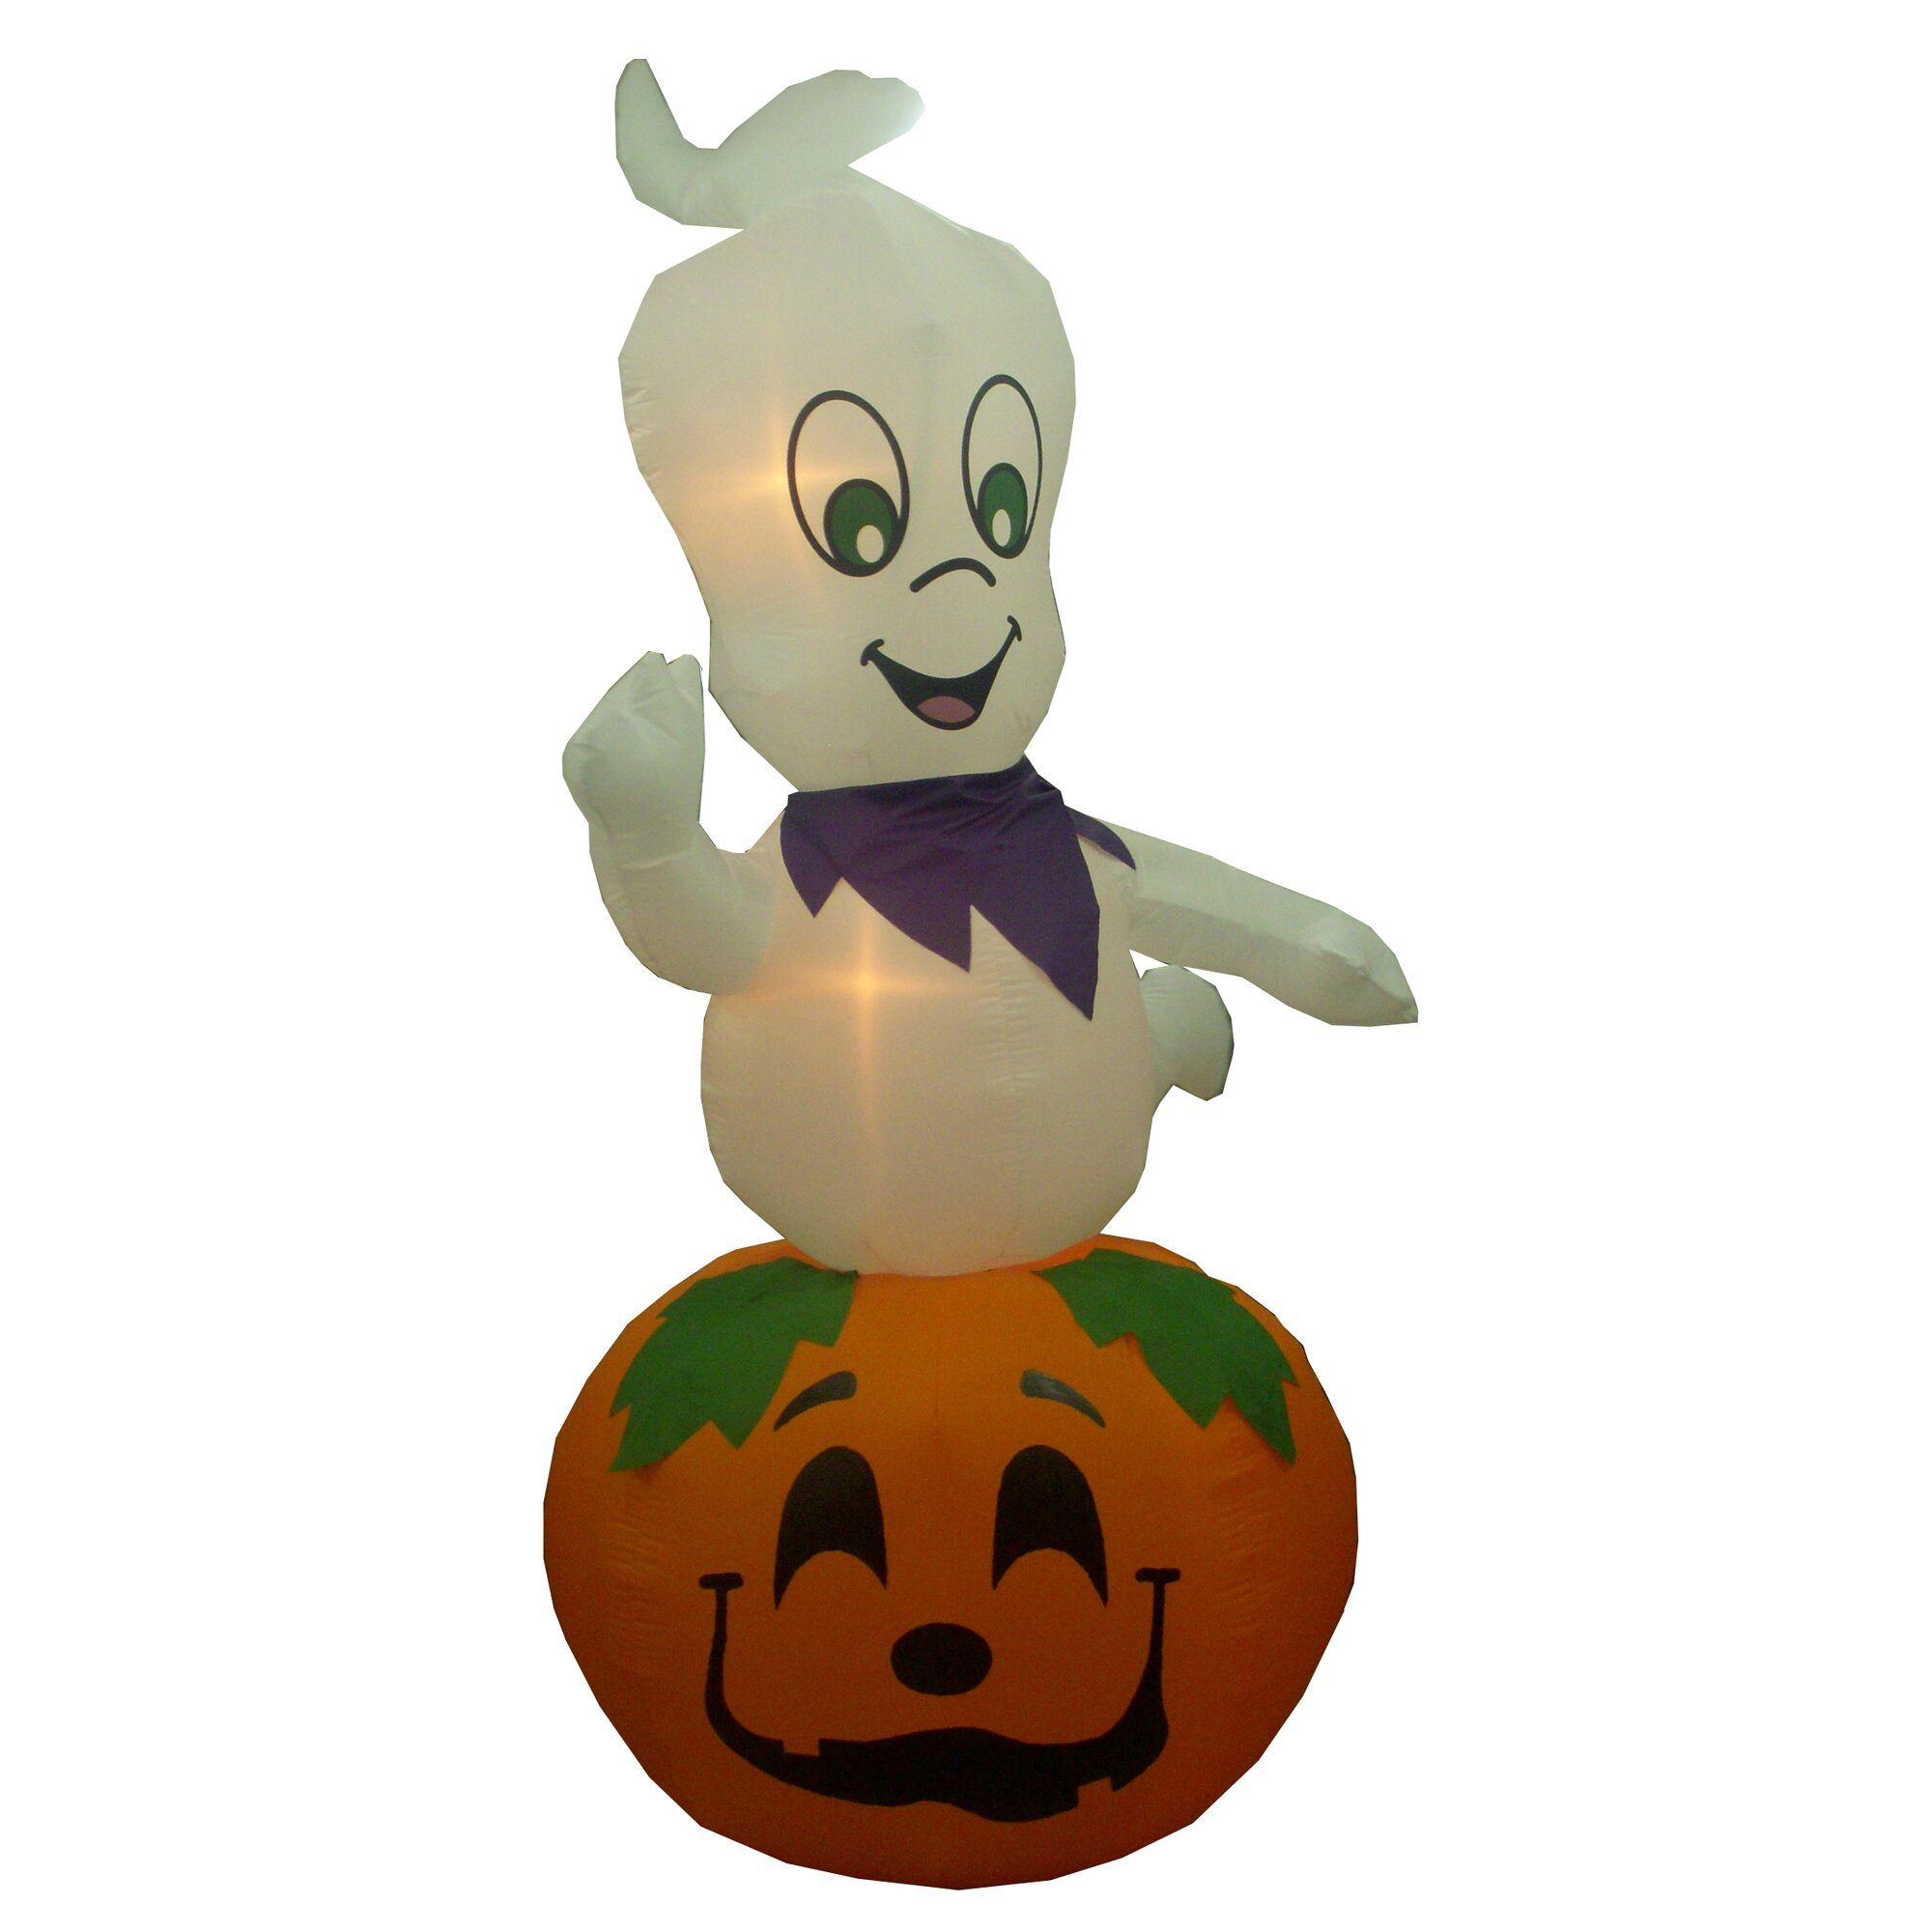 Outdoor inflatable halloween decorations - Animated Halloween Inflatable Ghost Casper On Pumpkin Indoor Outdoor Decoration